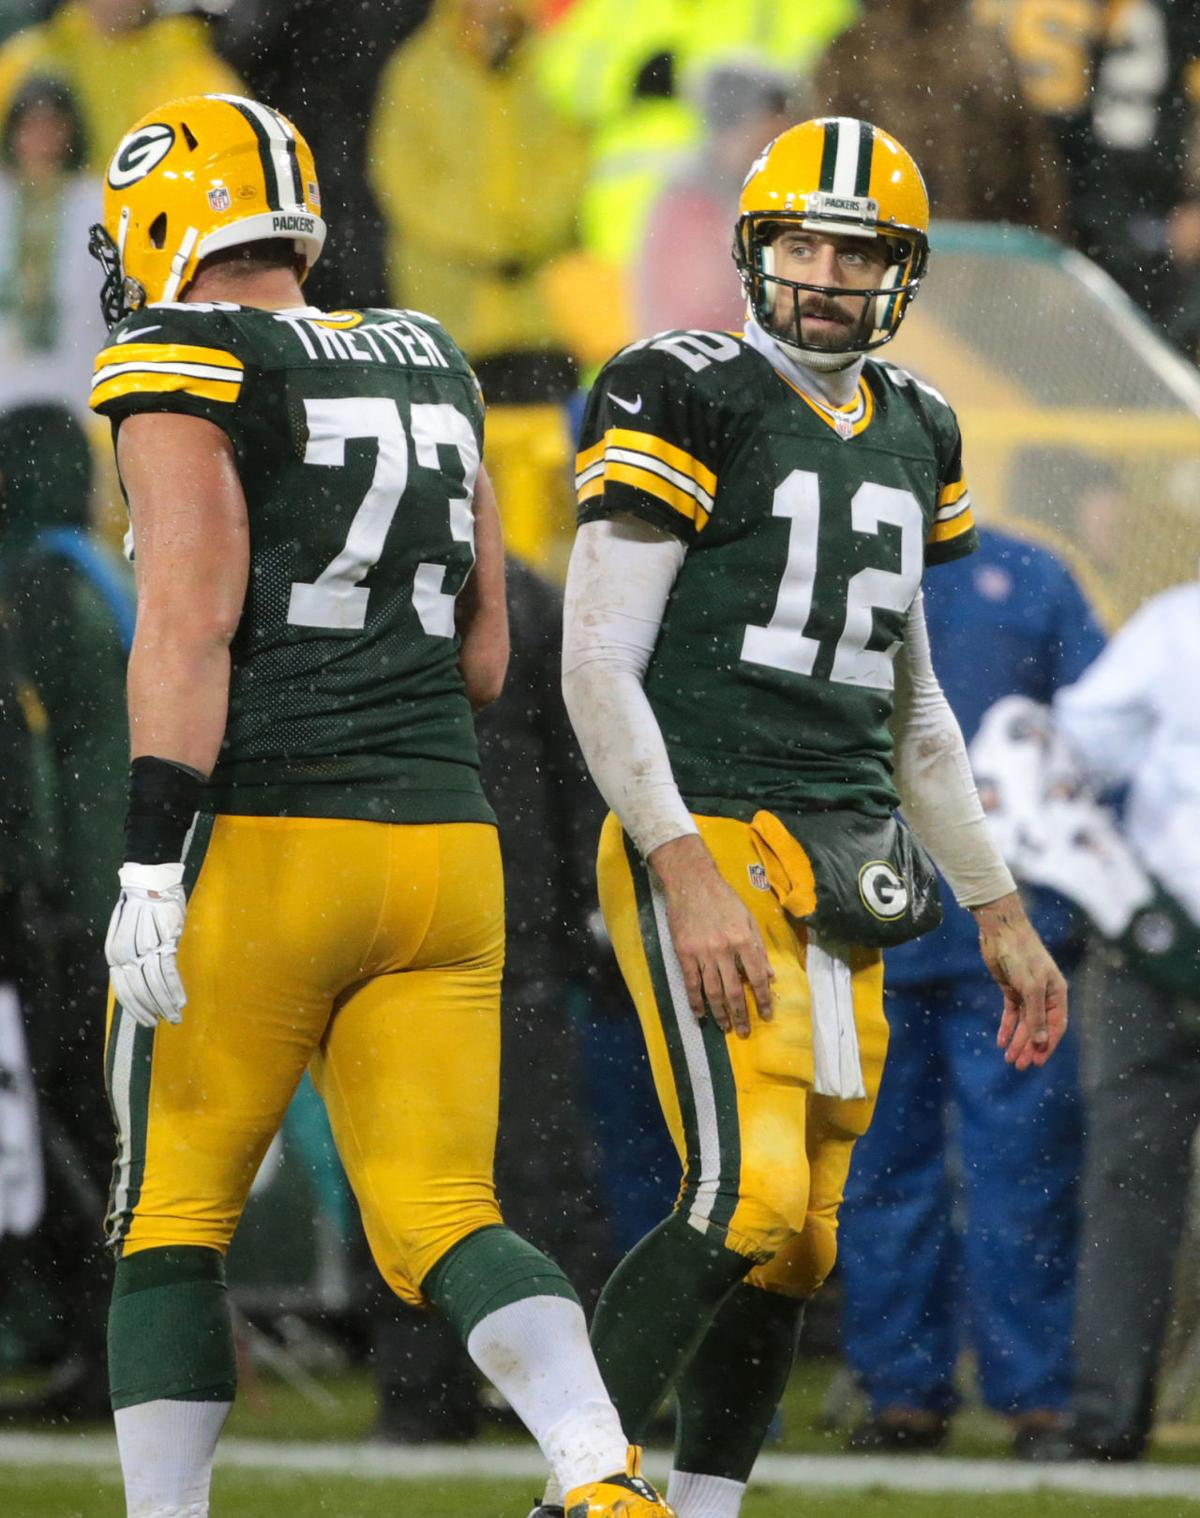 NFL Jerseys NFL - Tom Oates: With Packers' greatest quarterbacks in attendance, poor ...